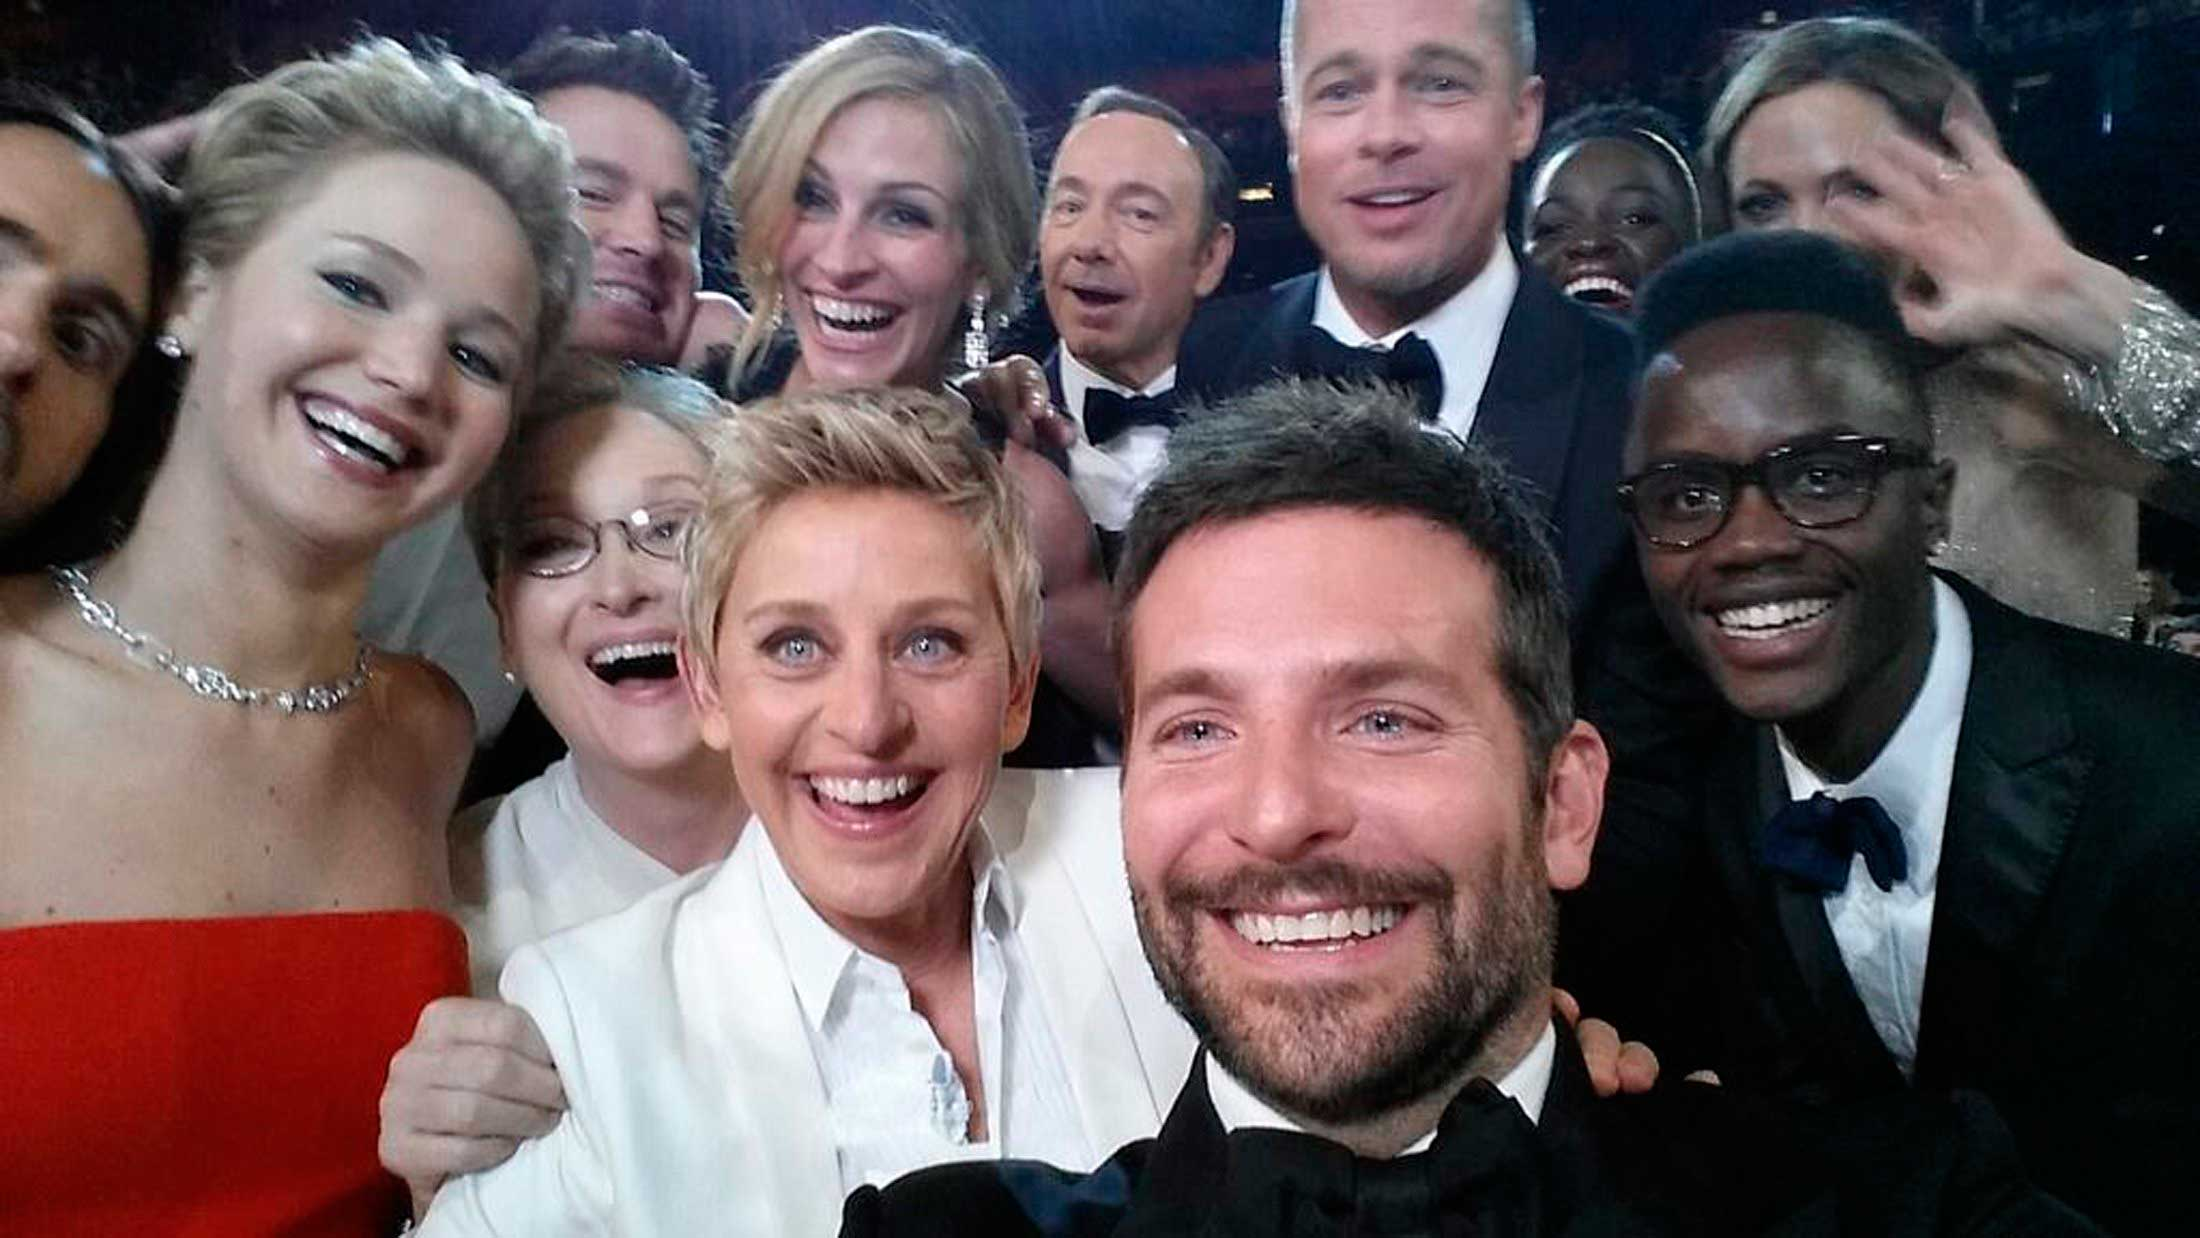 An image posted by Oscars show host Ellen DeGeneres on her Twitter account shows movie stars, including Jared Leto, Jennifer Lawrence, Meryl Streep, Channing Tatum, Julia Roberts, Kevin Spacey, Brad Pitt, Lupita Nyong'o, Angelina Jolie and Bradley Cooper as well as Nyong'o's brother Peter. March 2, 2014.